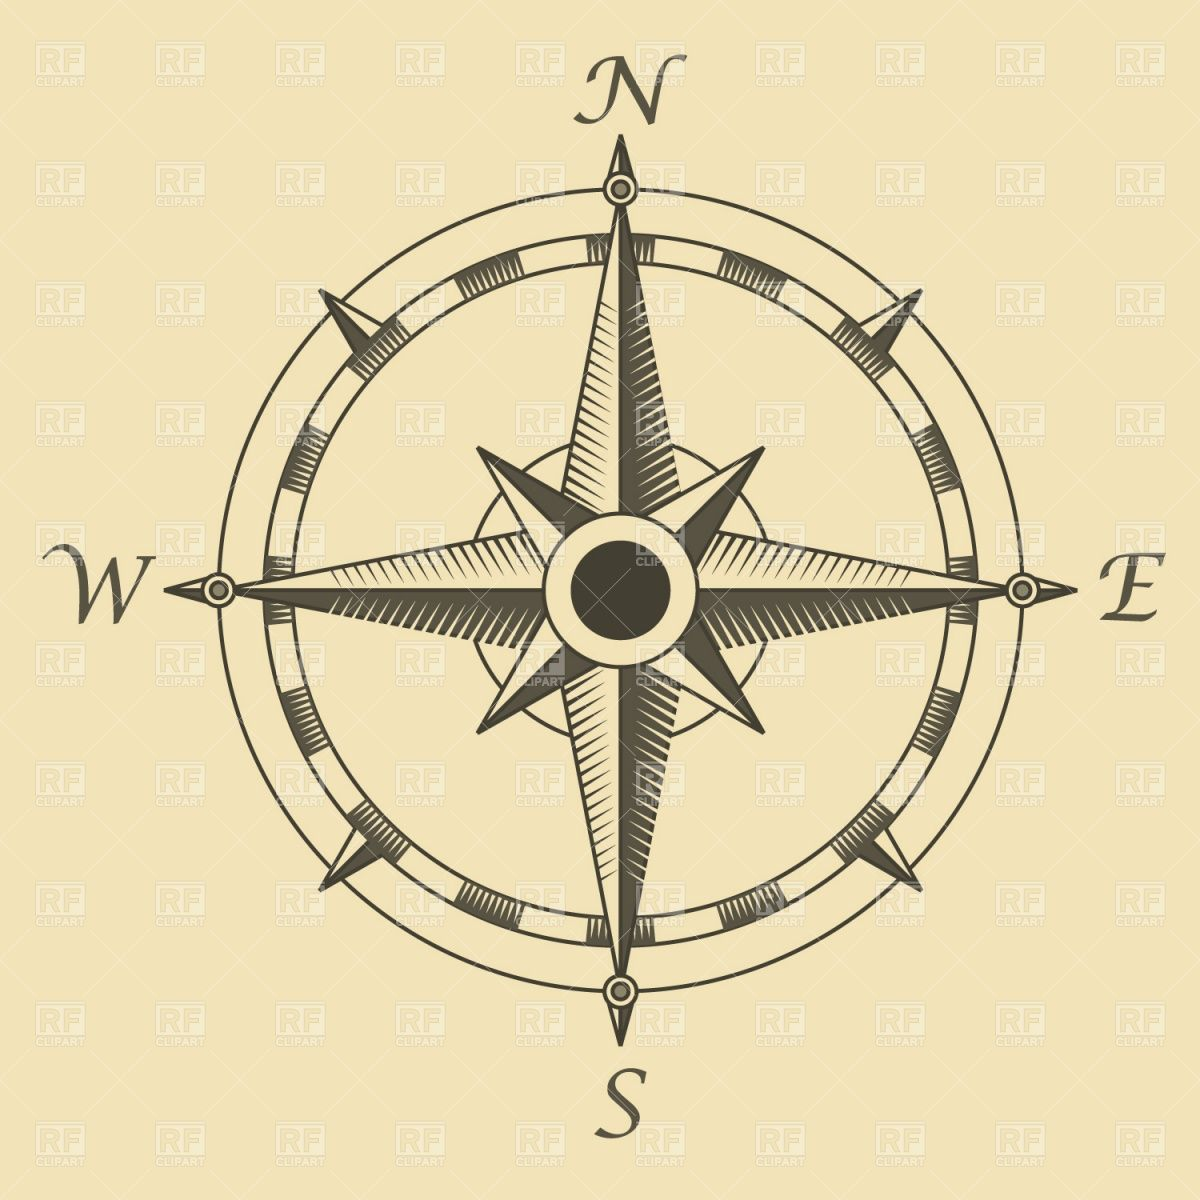 Compass rose Vector Image – Vector Artwork of Signs, Symbols, Maps ...